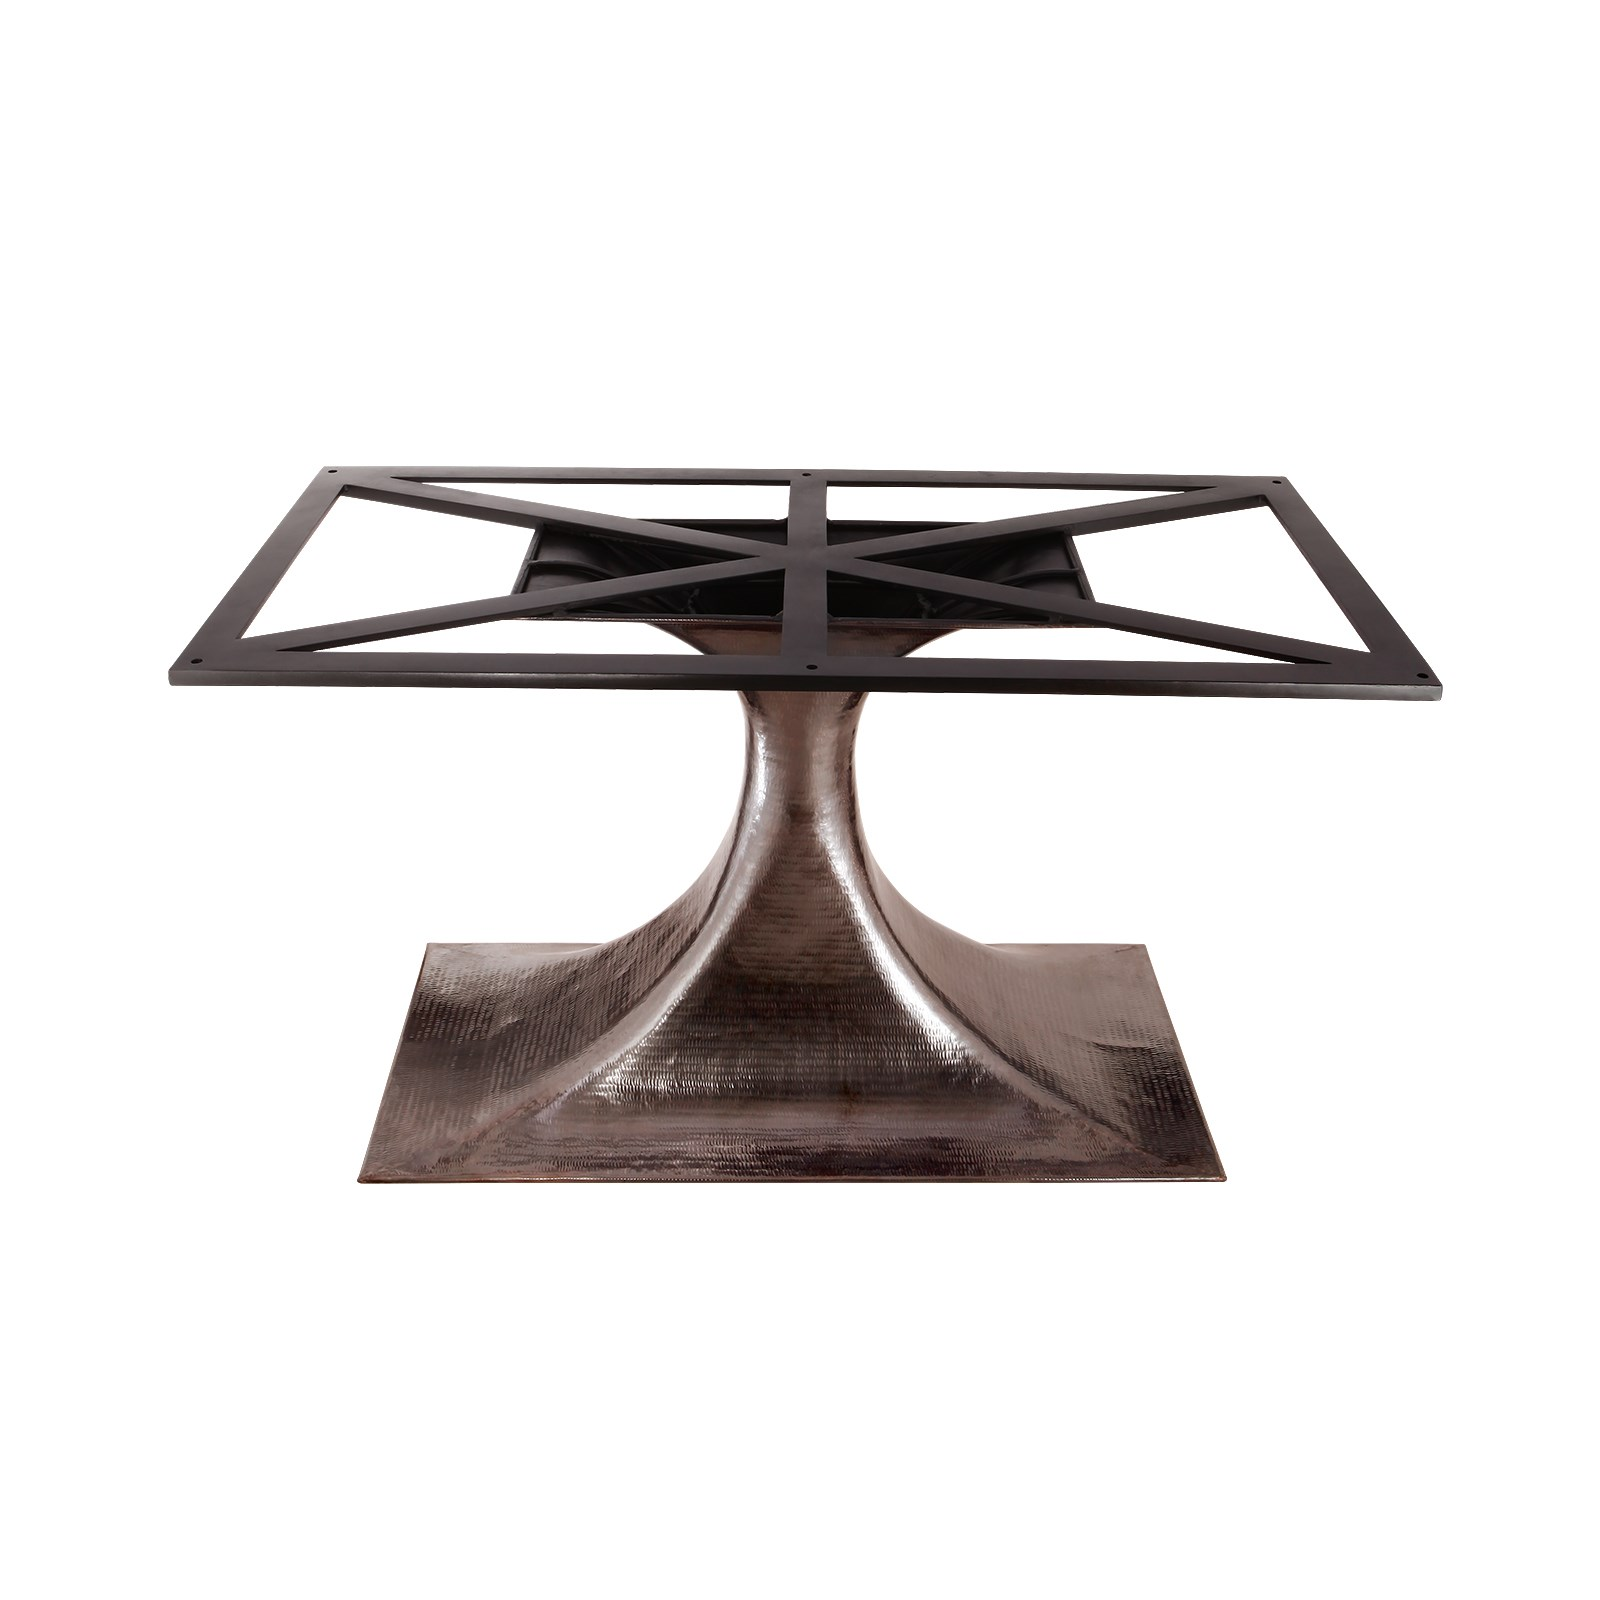 Stockholm Bronze Oval Dining Table Base Pairs with 95  : STO 380 804 B1lg from bungalow5.azurewebsites.net size 1600 x 1600 jpeg 146kB